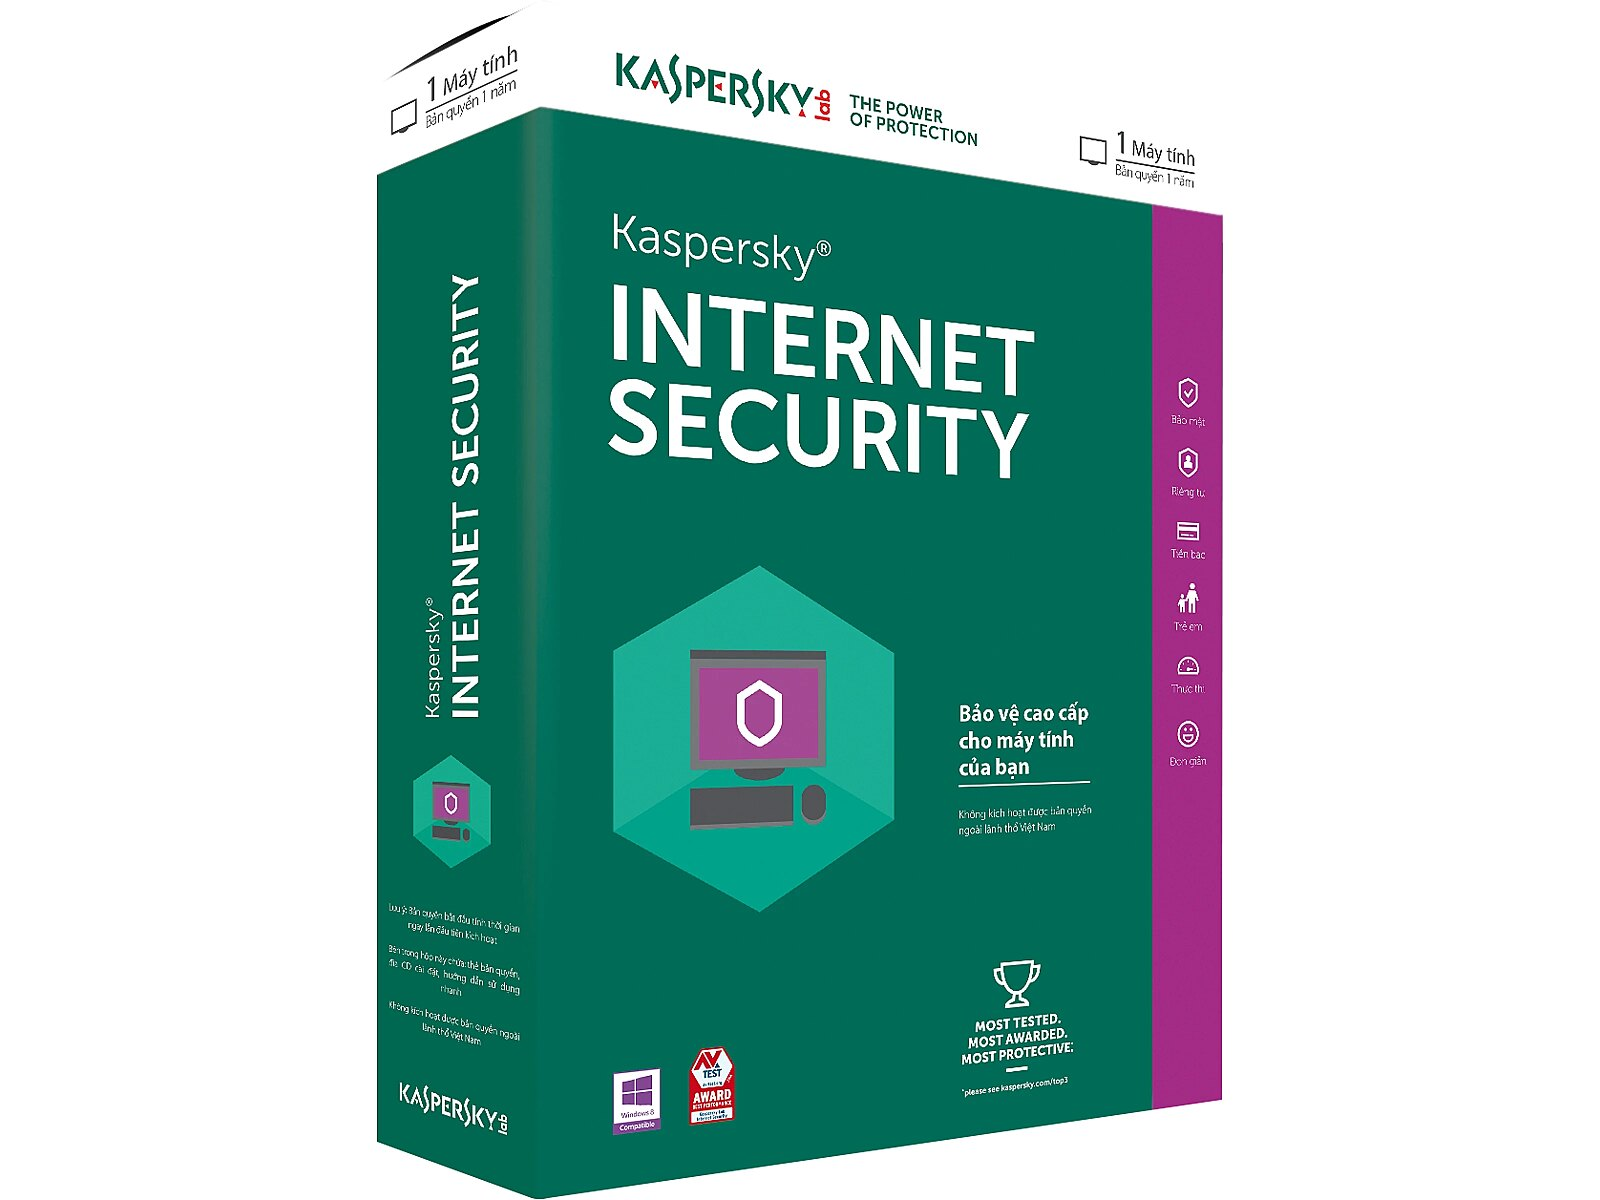 Kaspersky Lab Internet Security, 1 Year, 2 Devices..